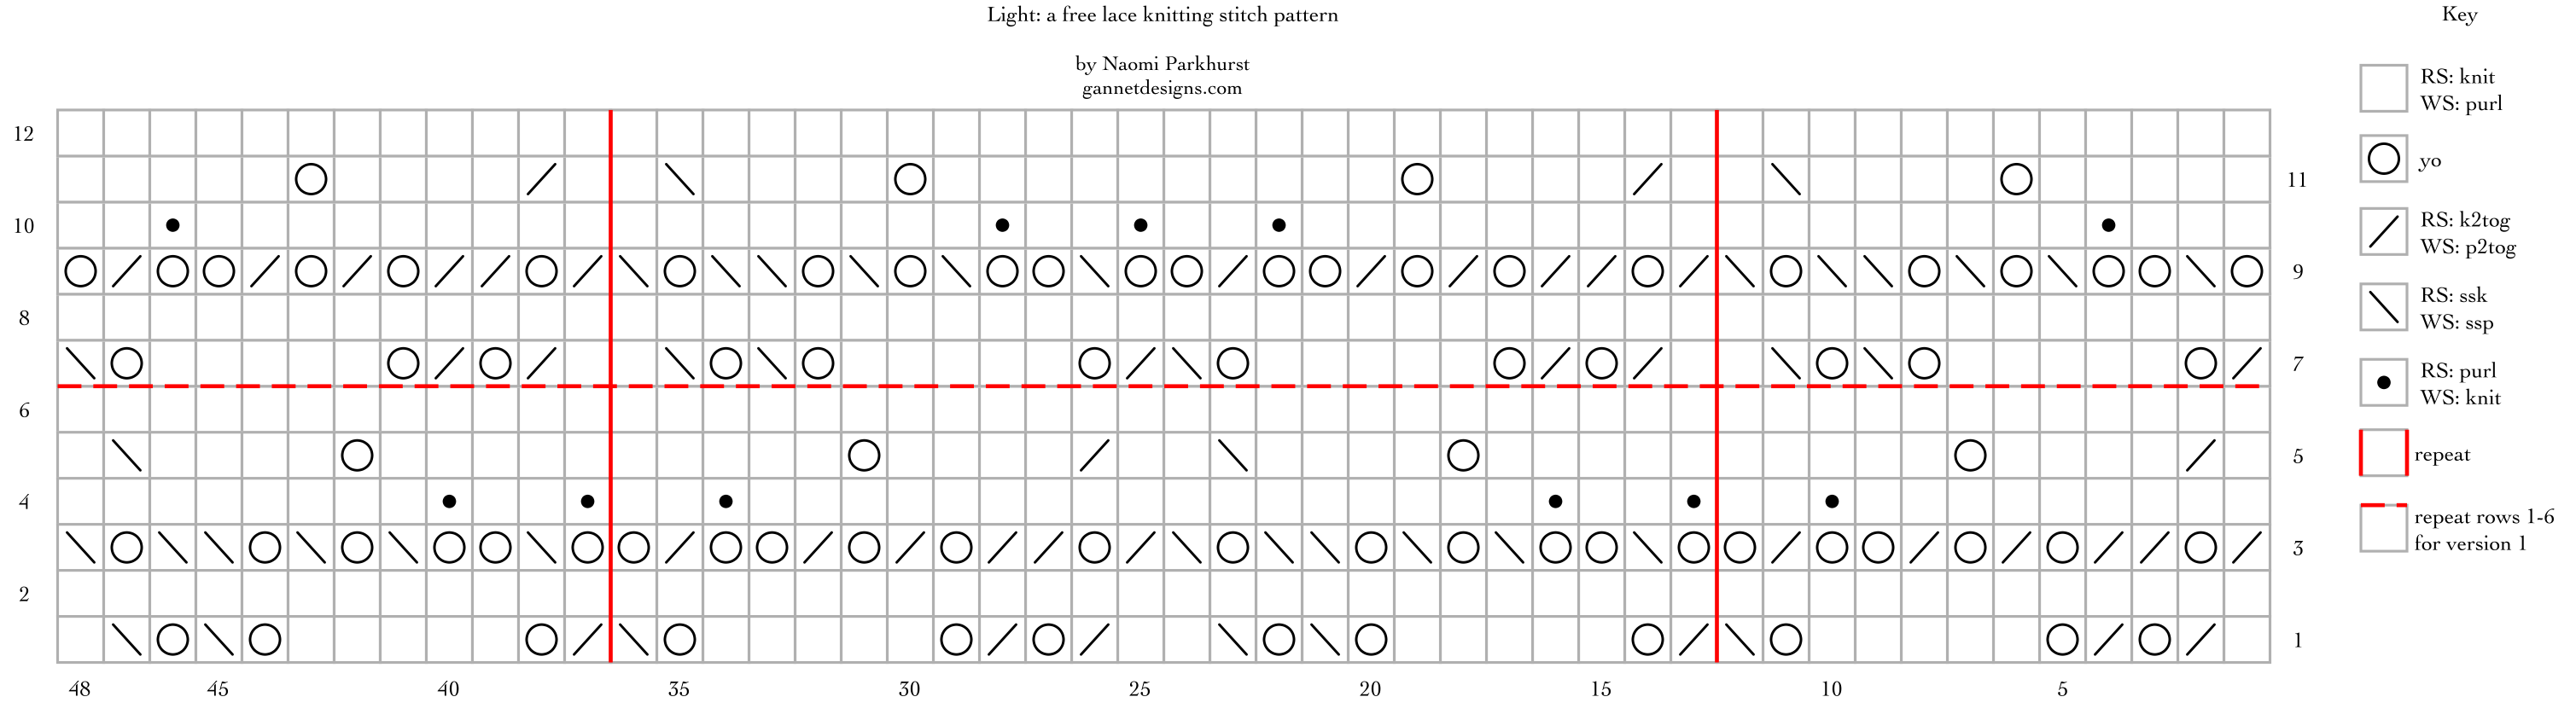 Light: a free lace knitting stitch pattern chart, by Naomi Parkhurst